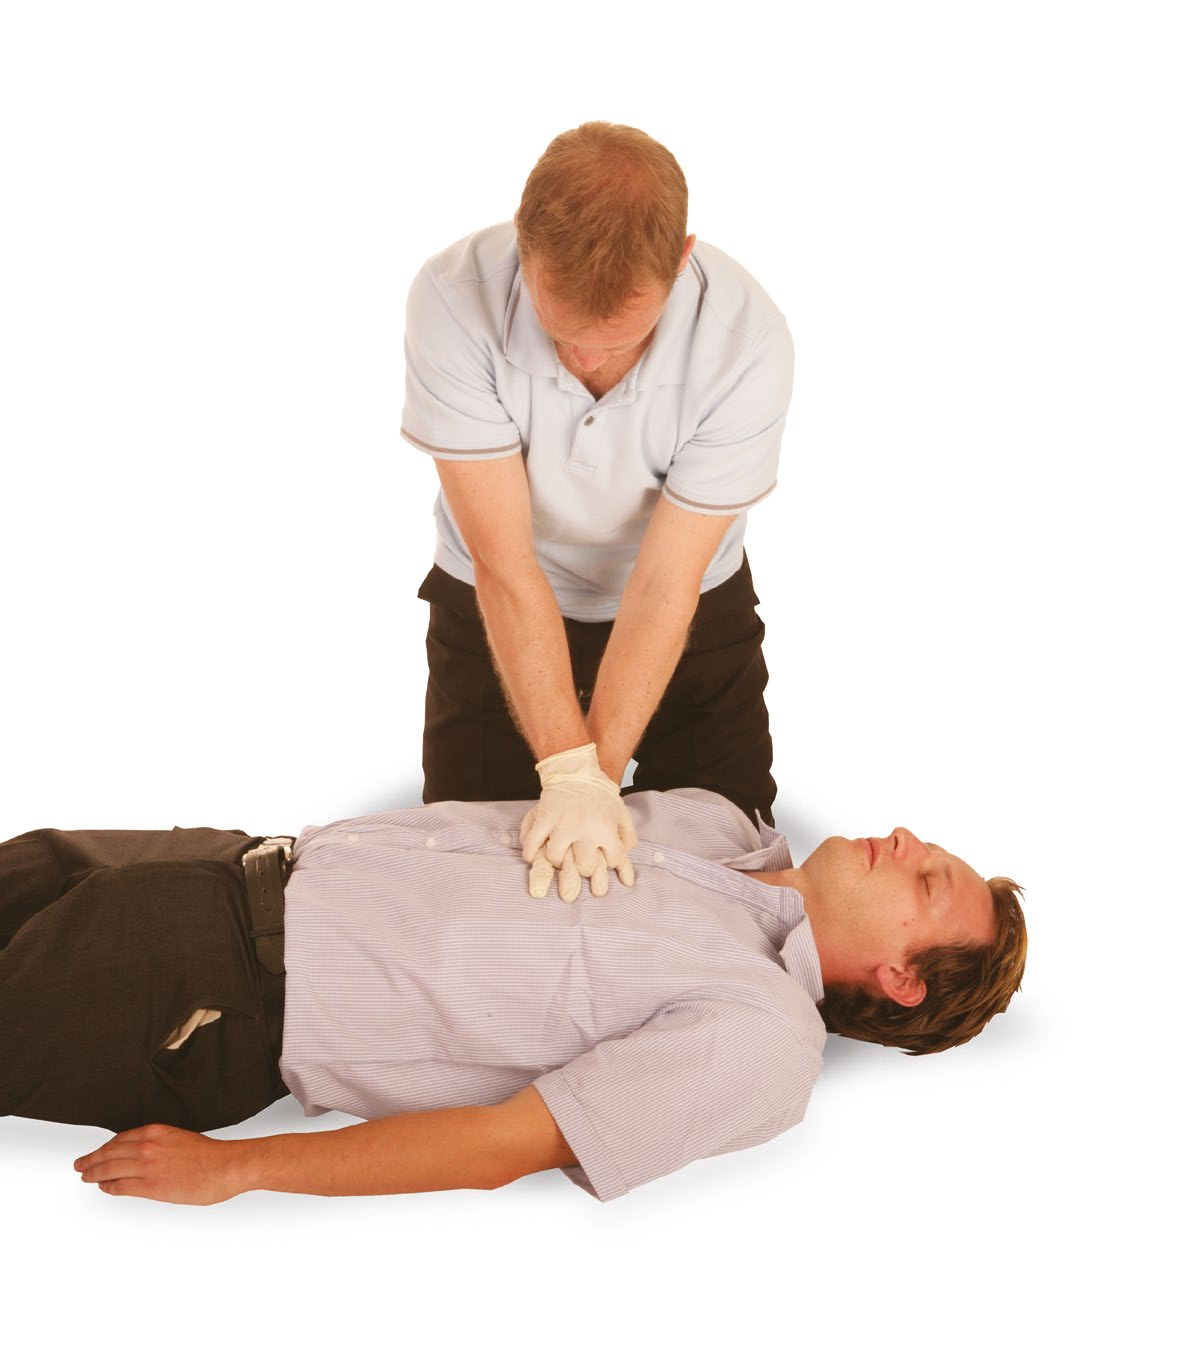 Cardiopulmonary resuscitation (CPR) Cardiopulmonary resuscitation (CPR) should be administered to a casualty who is not breathing normally (and no signs of life).